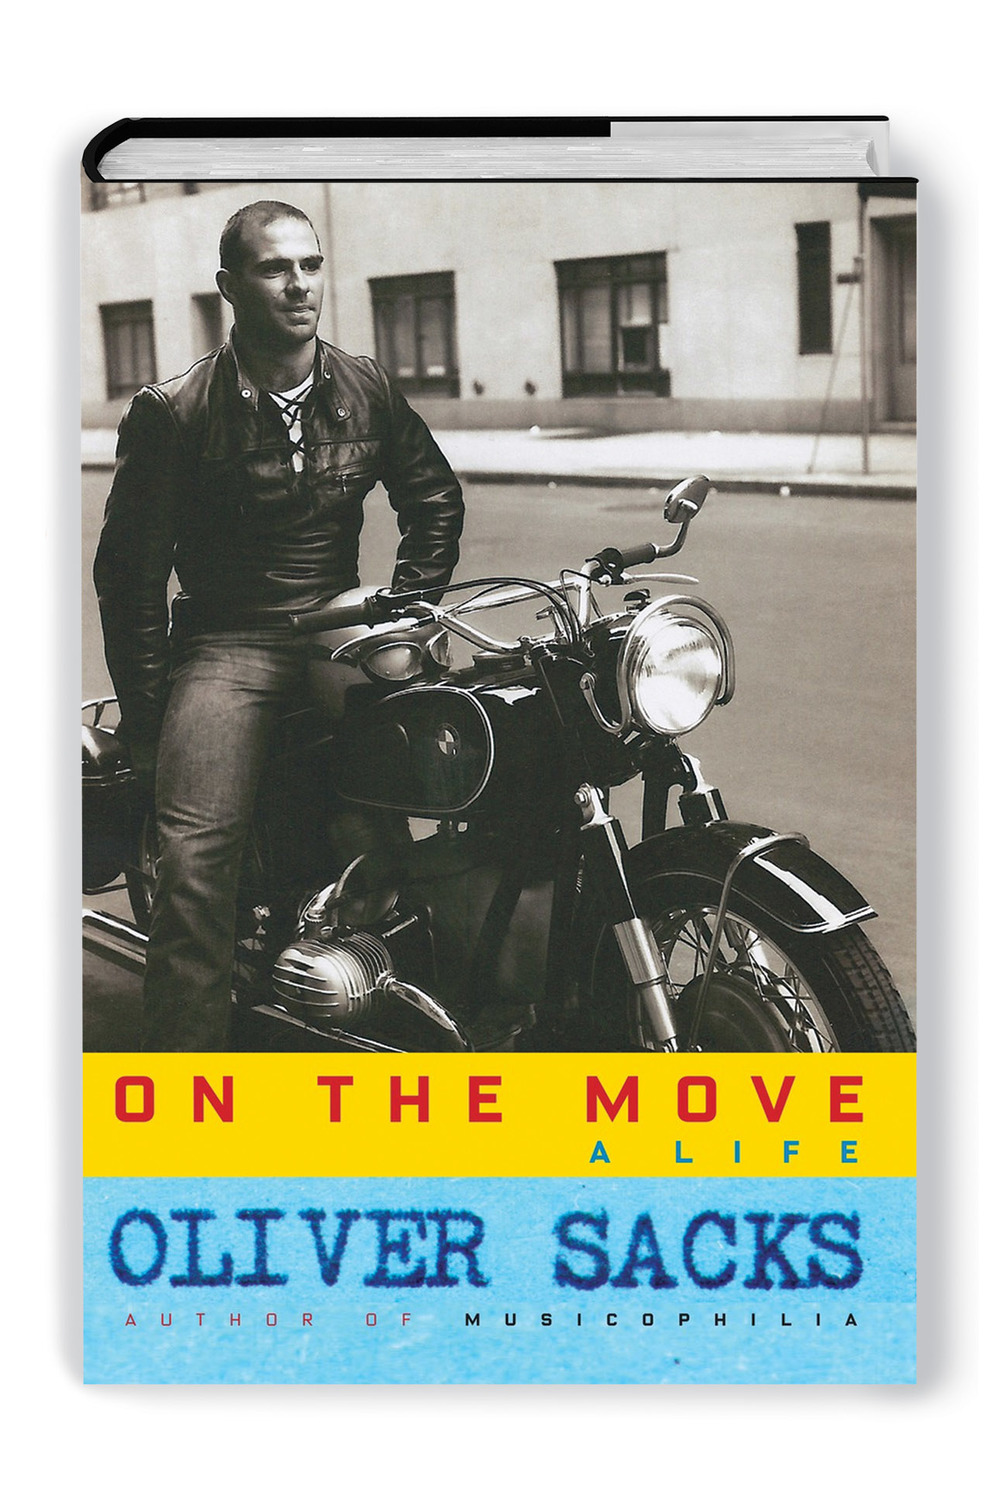 on_the_move_by_oliver_sacks_book_WEB.jpg